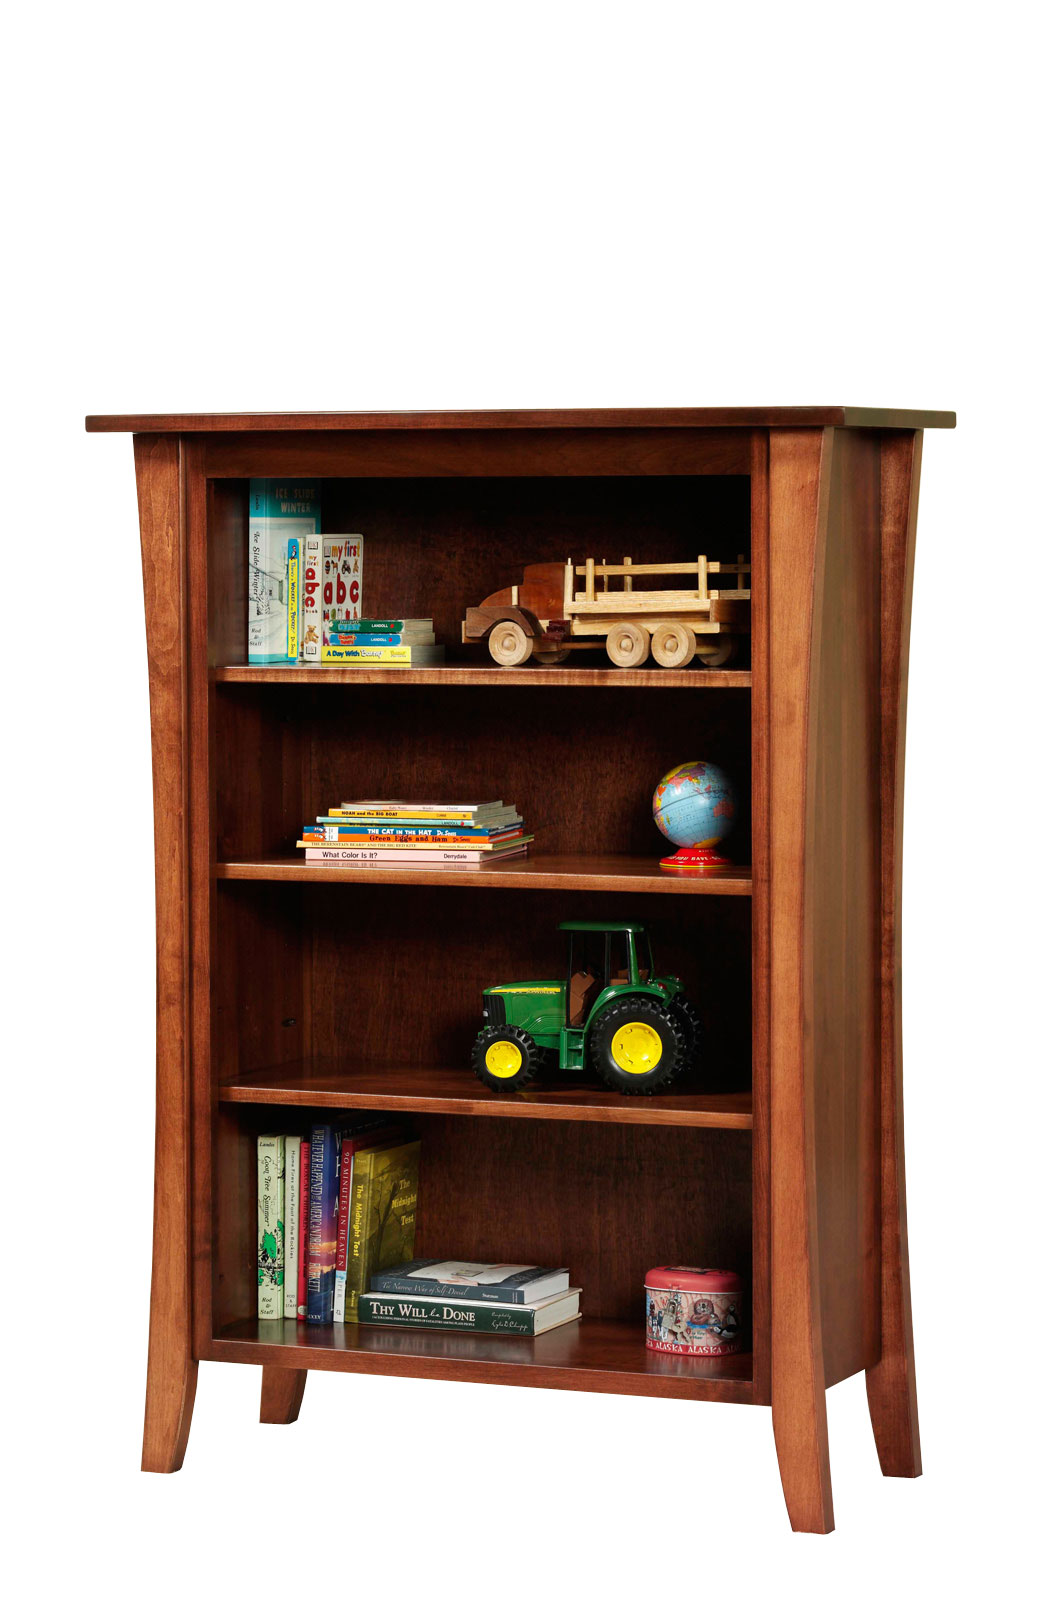 Manhattan Childrens Bookcase Ohio Hardwood Furniture : Manhattan Bookcase2 from www.ohiohardwoodfurniture.com size 1058 x 1600 jpeg 186kB